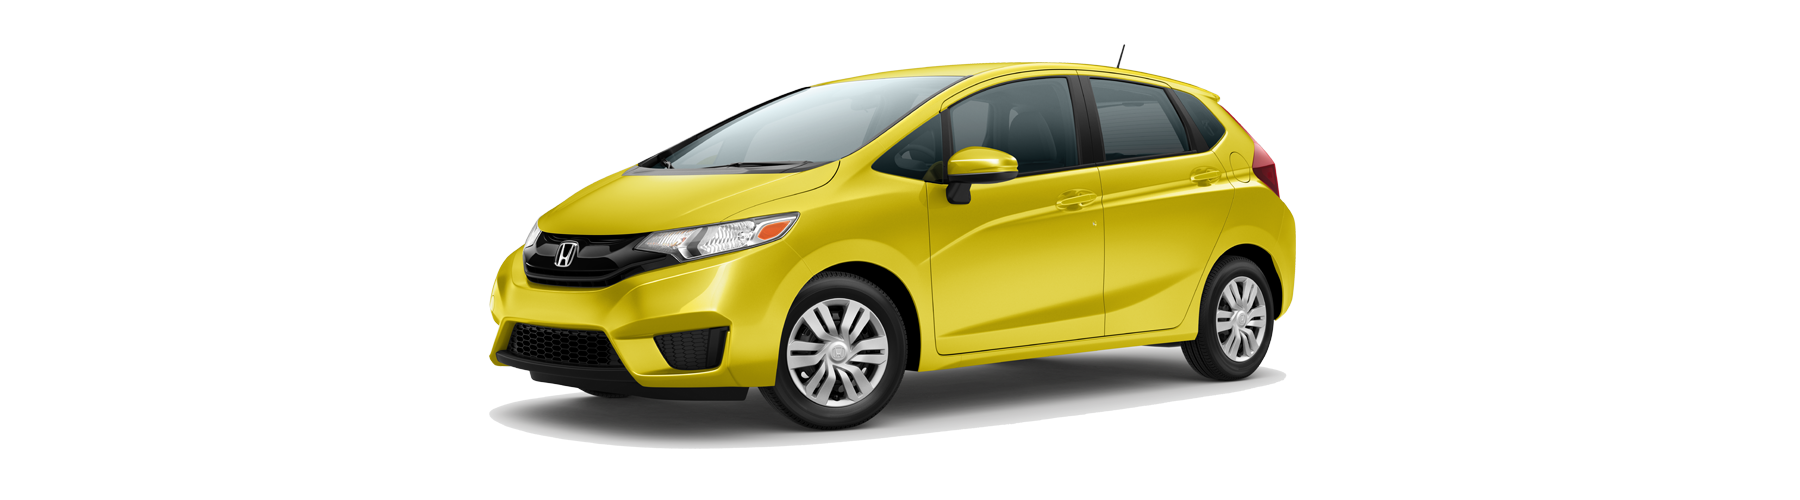 used 2015 honda fit hatchback pricing for sale edmunds autos post. Black Bedroom Furniture Sets. Home Design Ideas